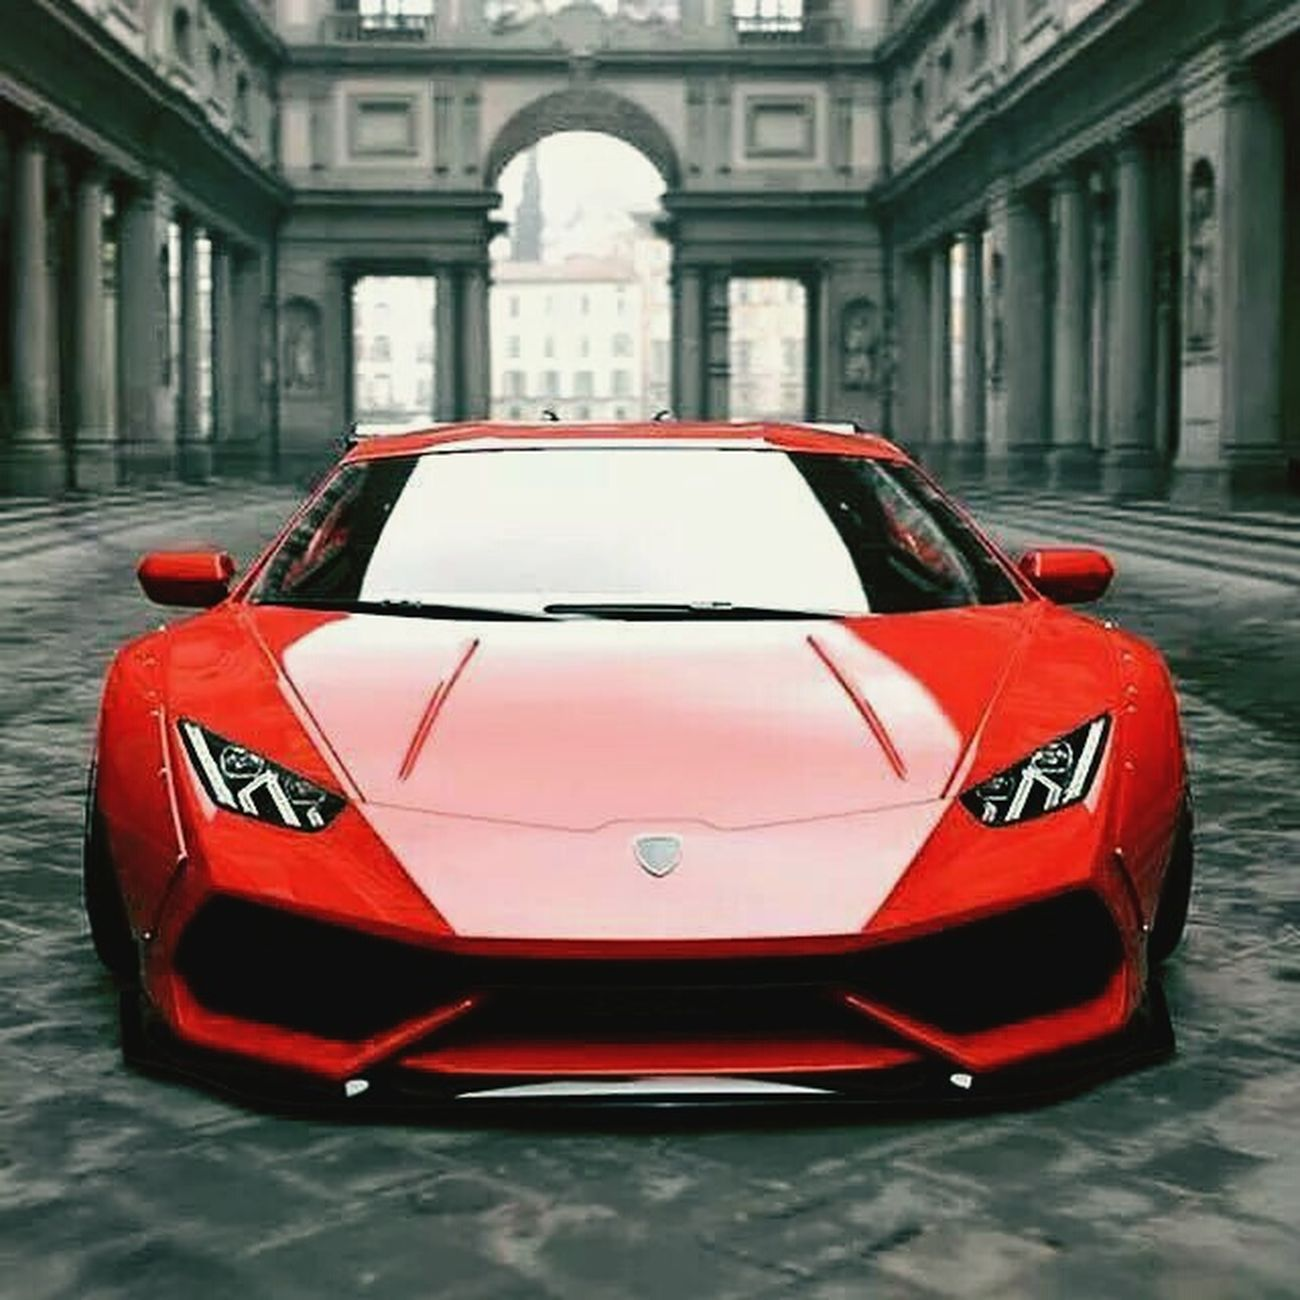 Awesome huracan